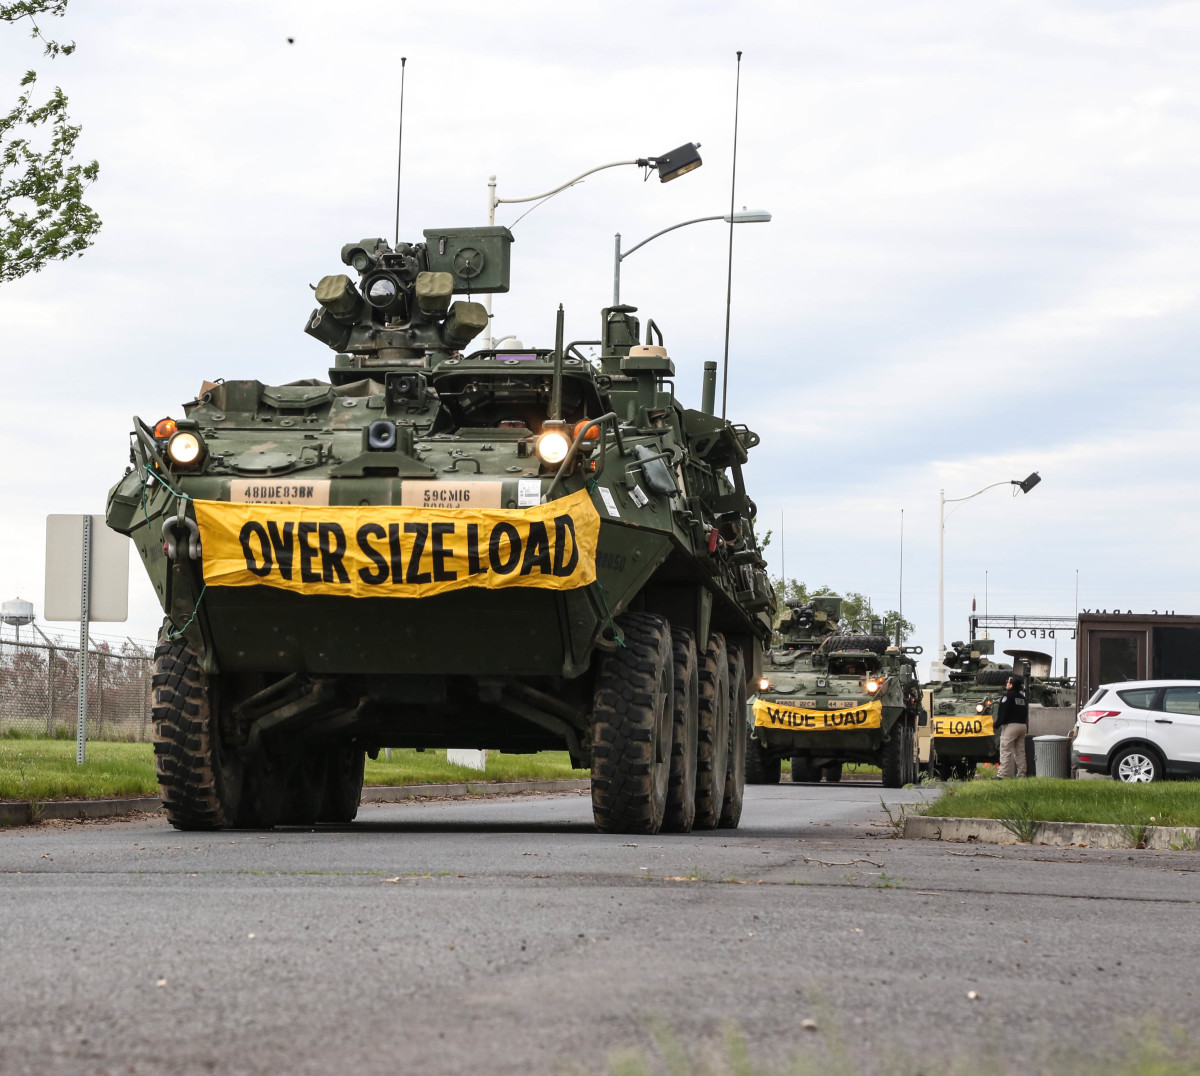 A convoy of Stryker armored vehicles enter the U.S. Army Chemical Depot during the Dragon Fire exercise, Umatilla, Ore., May 6, 2017. Dragon Fire is a bilateral exercise between the 48th Chemical, Biological, Radiological, and Nuclear (CBRN) Brigade and the German Bundswehr CBRN Defense Command. It also serves as the culmination training event and validation exercise for the 22nd CBRN Battlion.